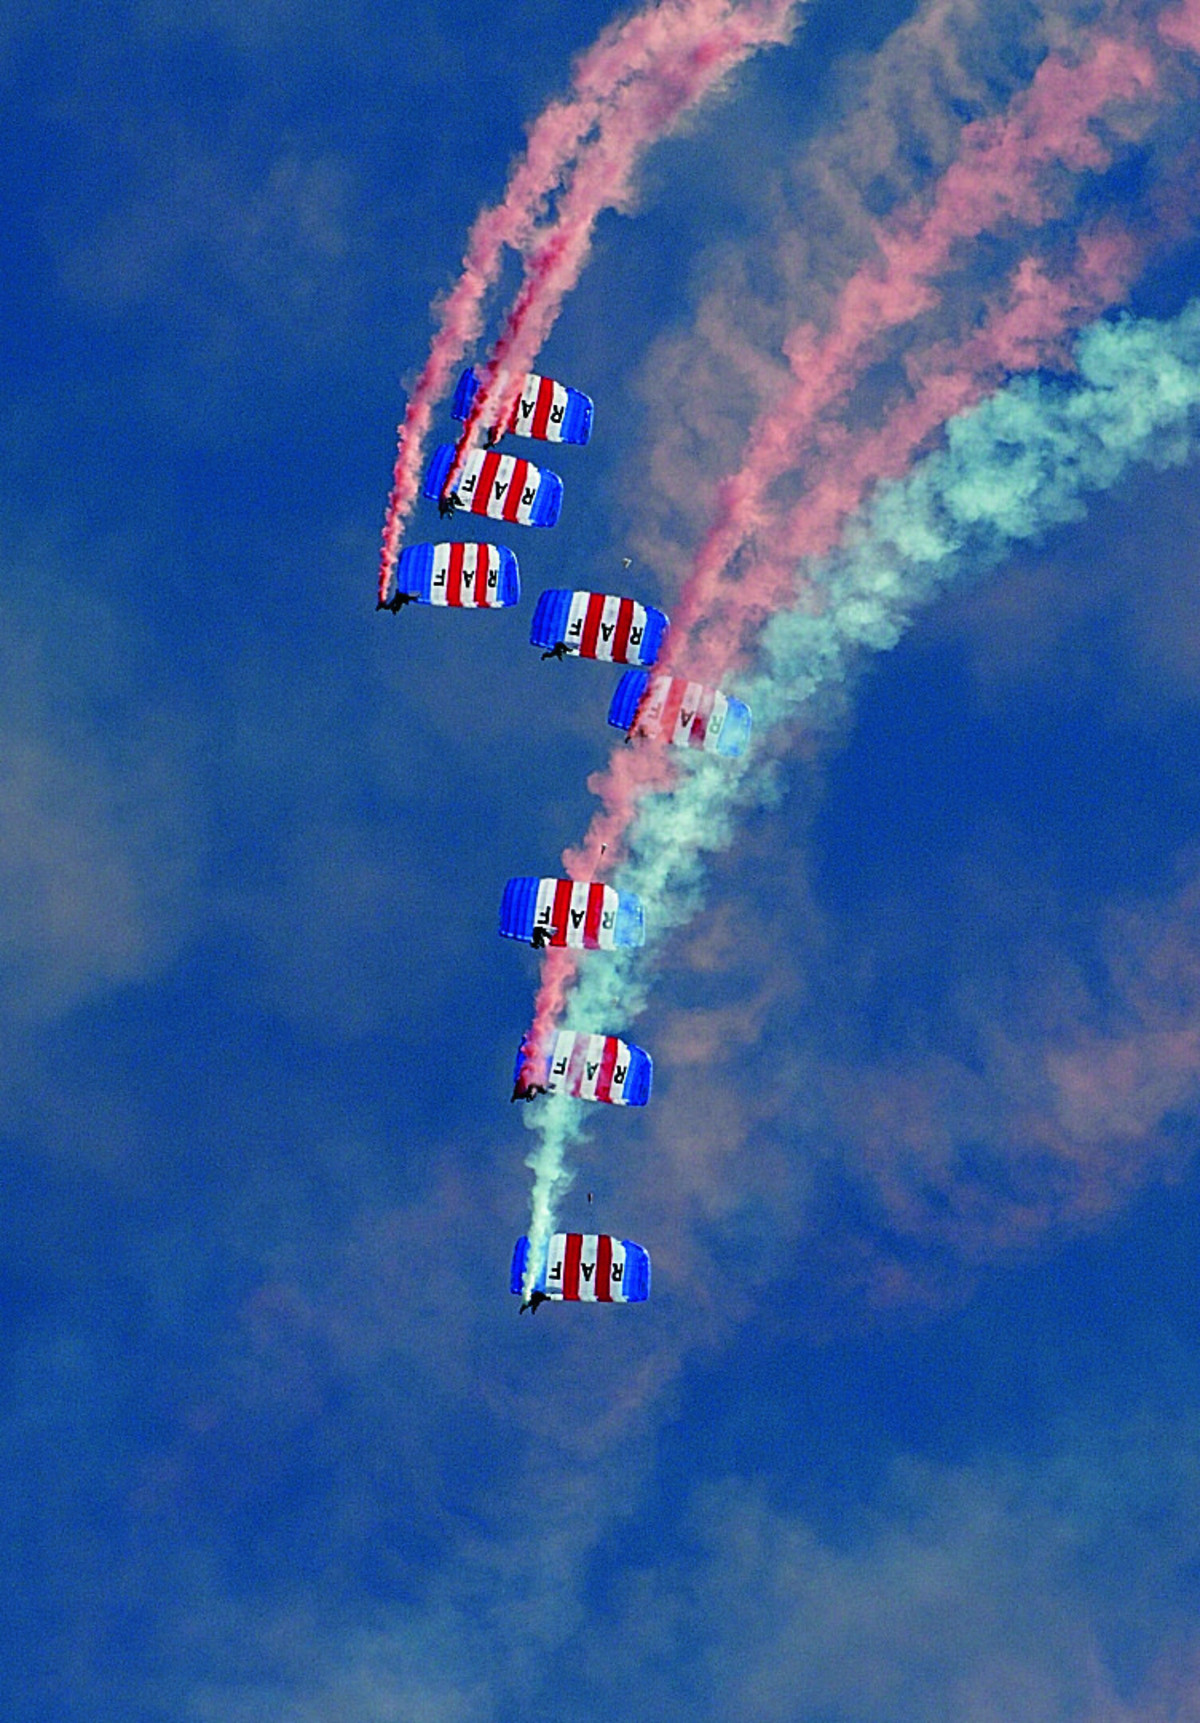 The vibrant picture of the parachute team snapped by Adi Webb from his mum's house